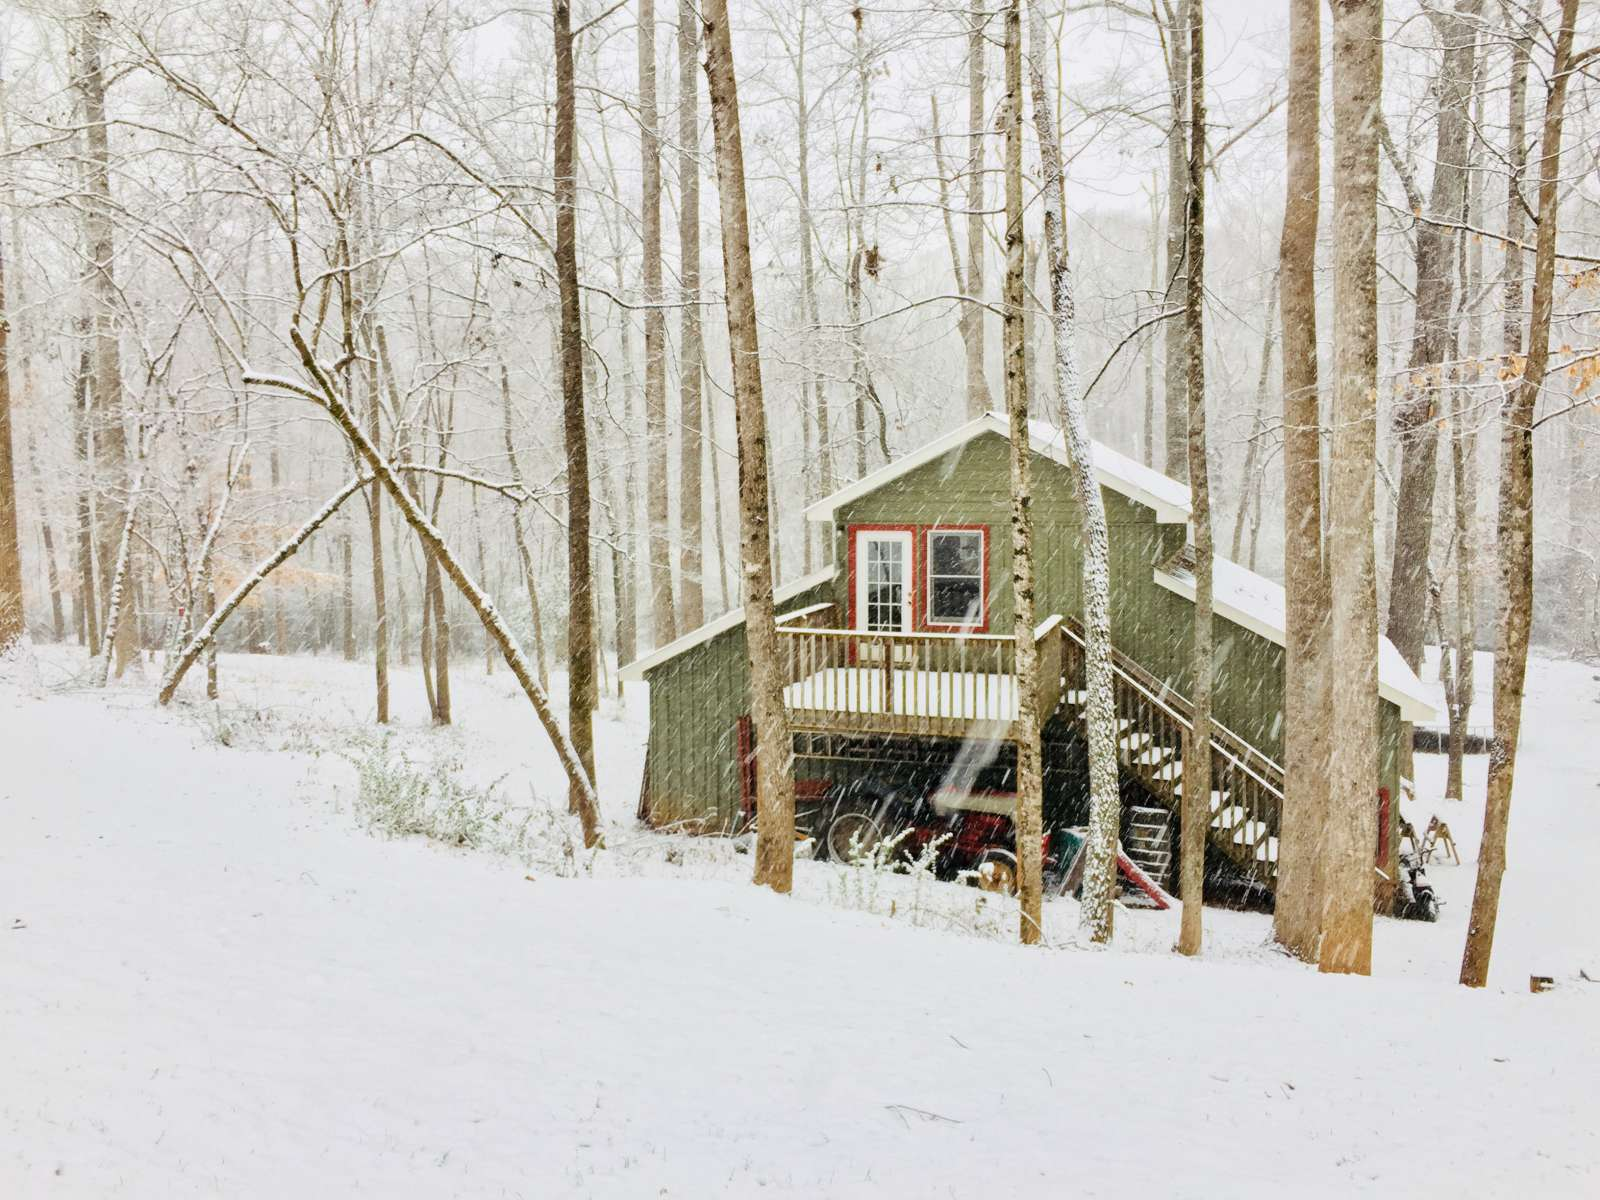 Cozy Tiny House in the Woods, Allen~Dally, SC: 1 Hipcamper review ...